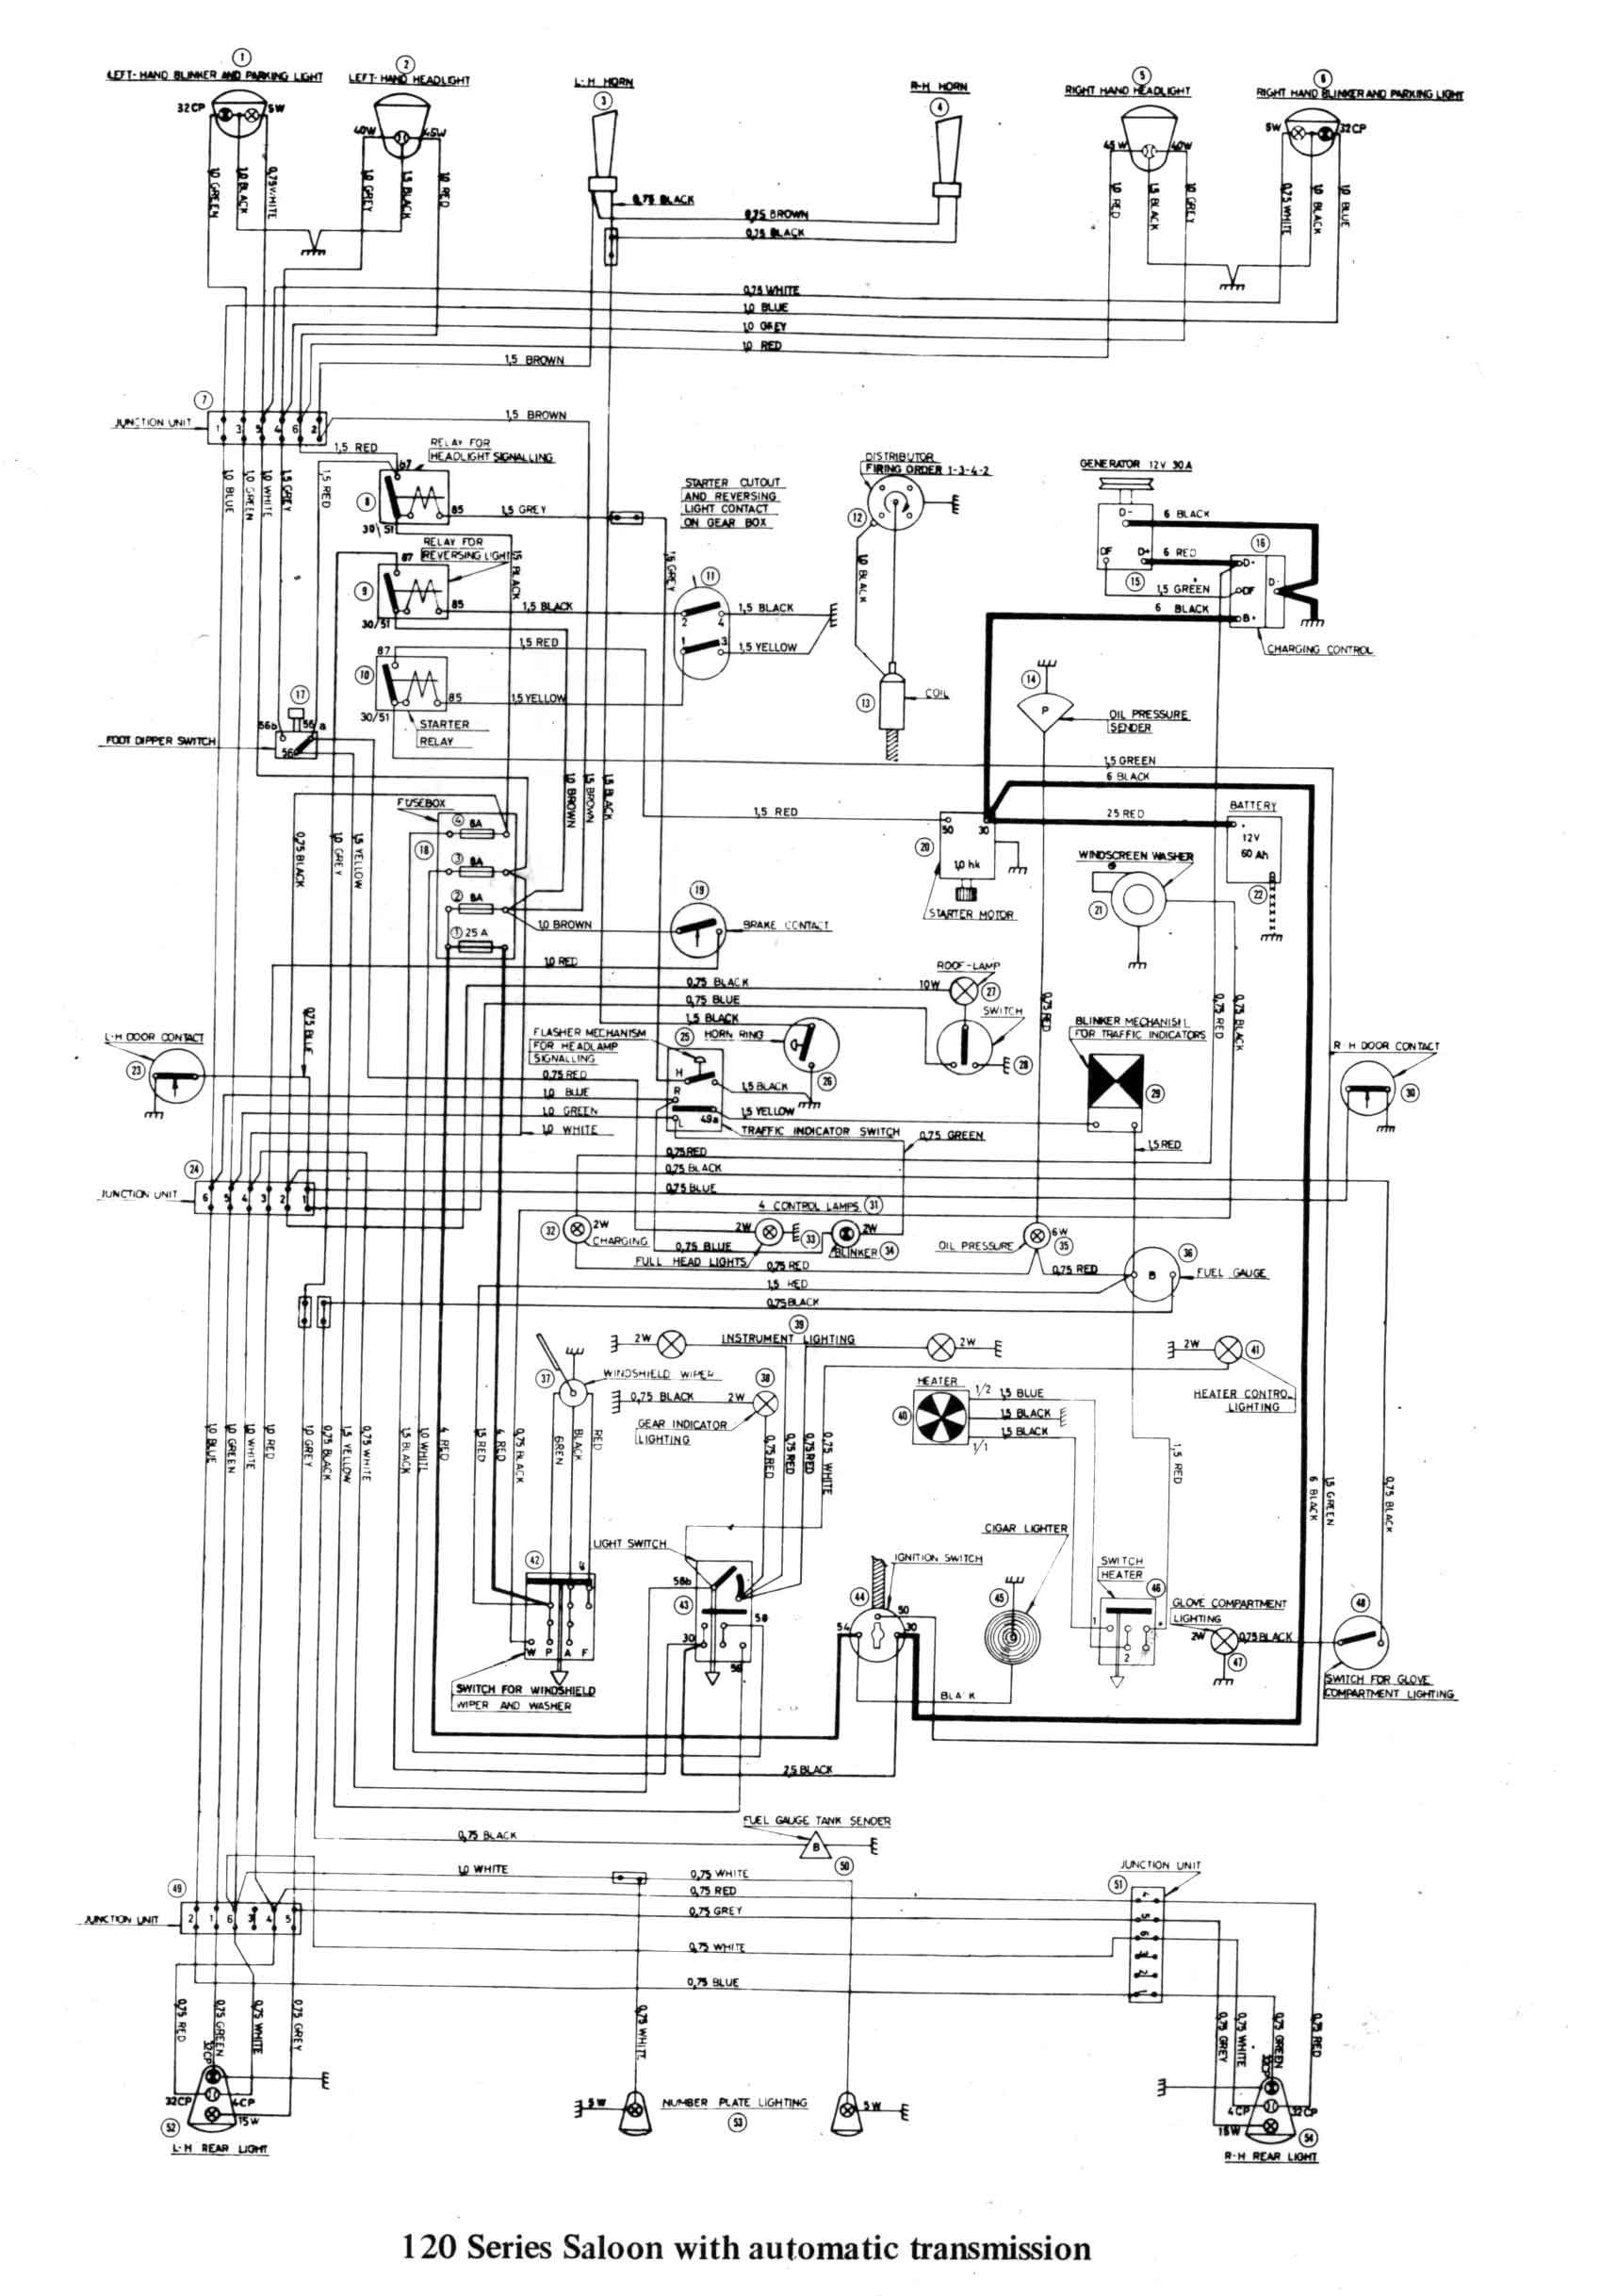 Ford Windstar Engine Diagram ford Focus Repair Manual Besides Polaris  Sportsman Wiring Diagram Of Ford Windstar